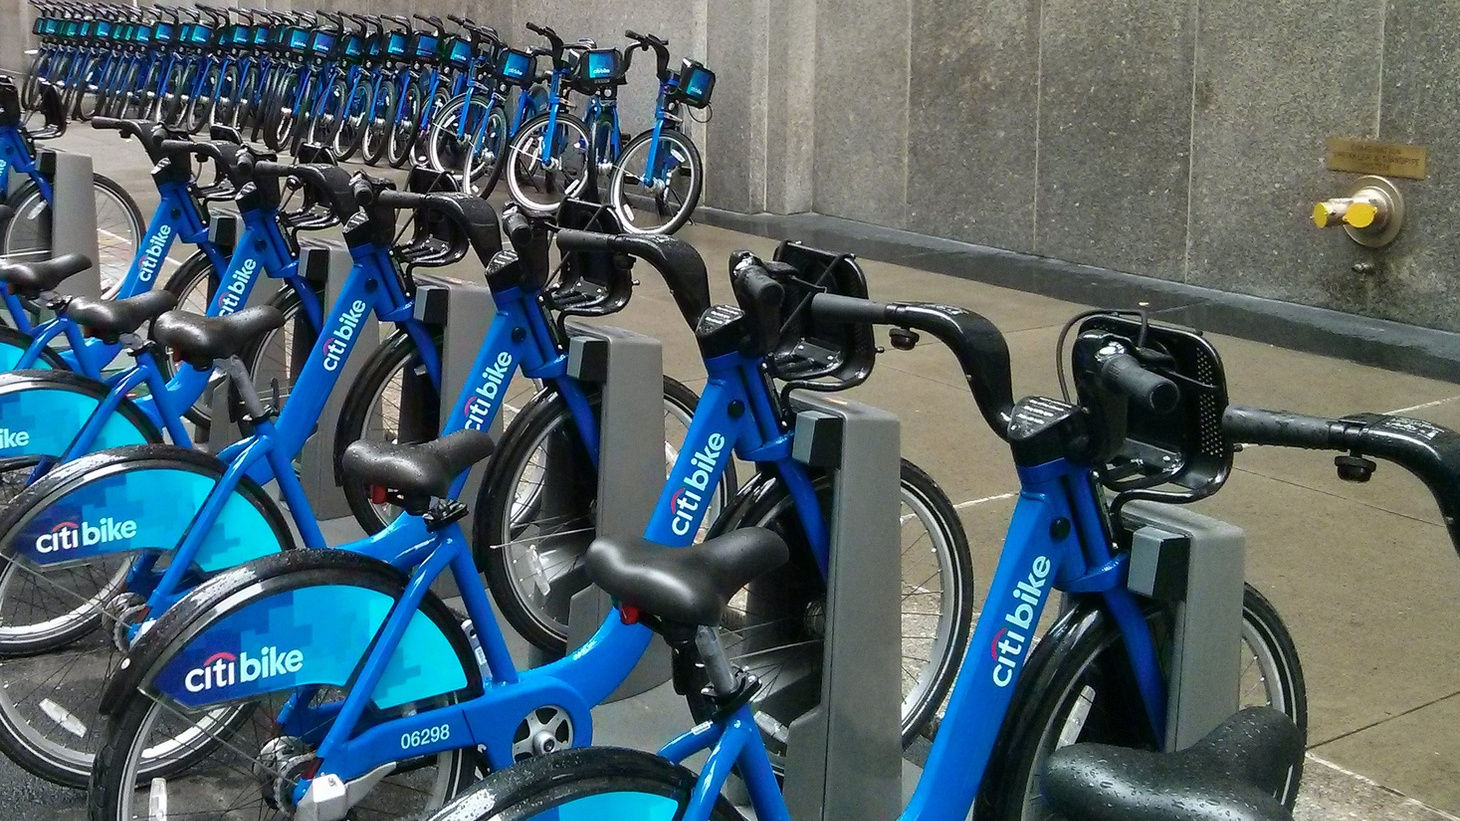 Bike sharing is coming to Los Angeles. If it works, there will be even more cyclists on the road, which could mean more antagonism between bikers and drivers. And our economy has been good for the 92 Californians who are on the Forbes 400 list, which was released today.